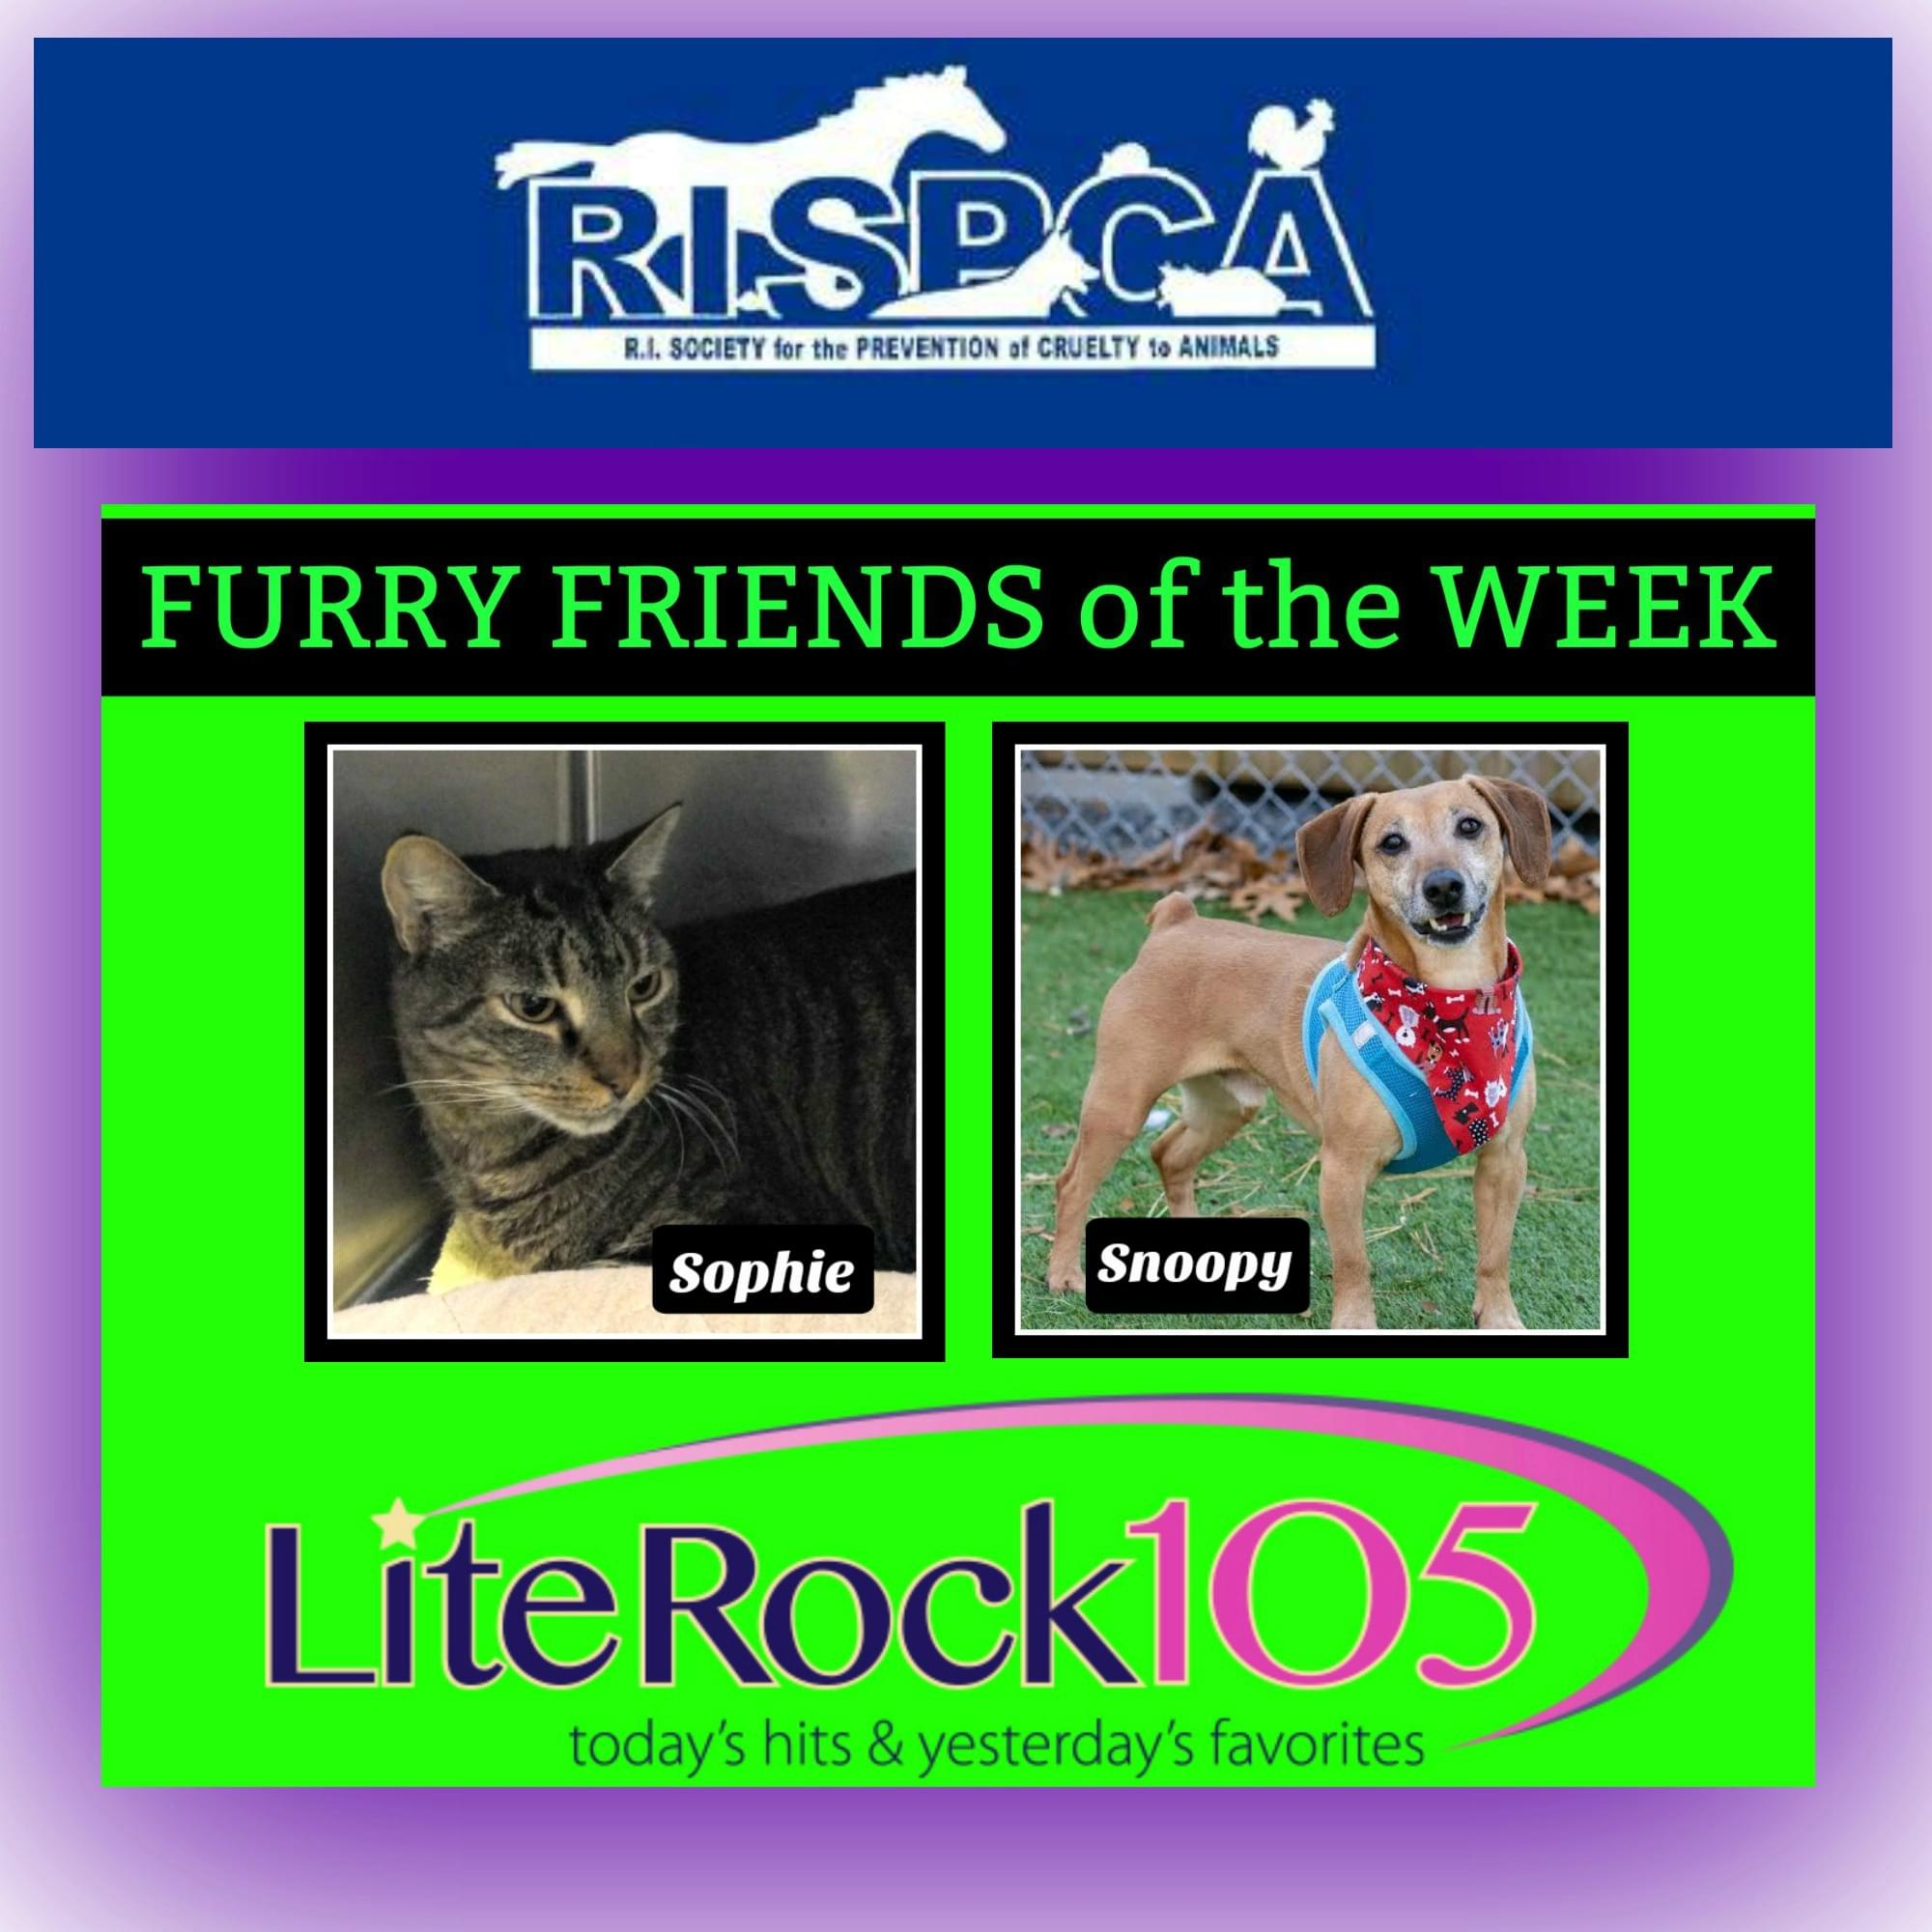 Meet Snoopy & Sophie – our latest FURRY FRIENDS of the WEEK (2/11/19)